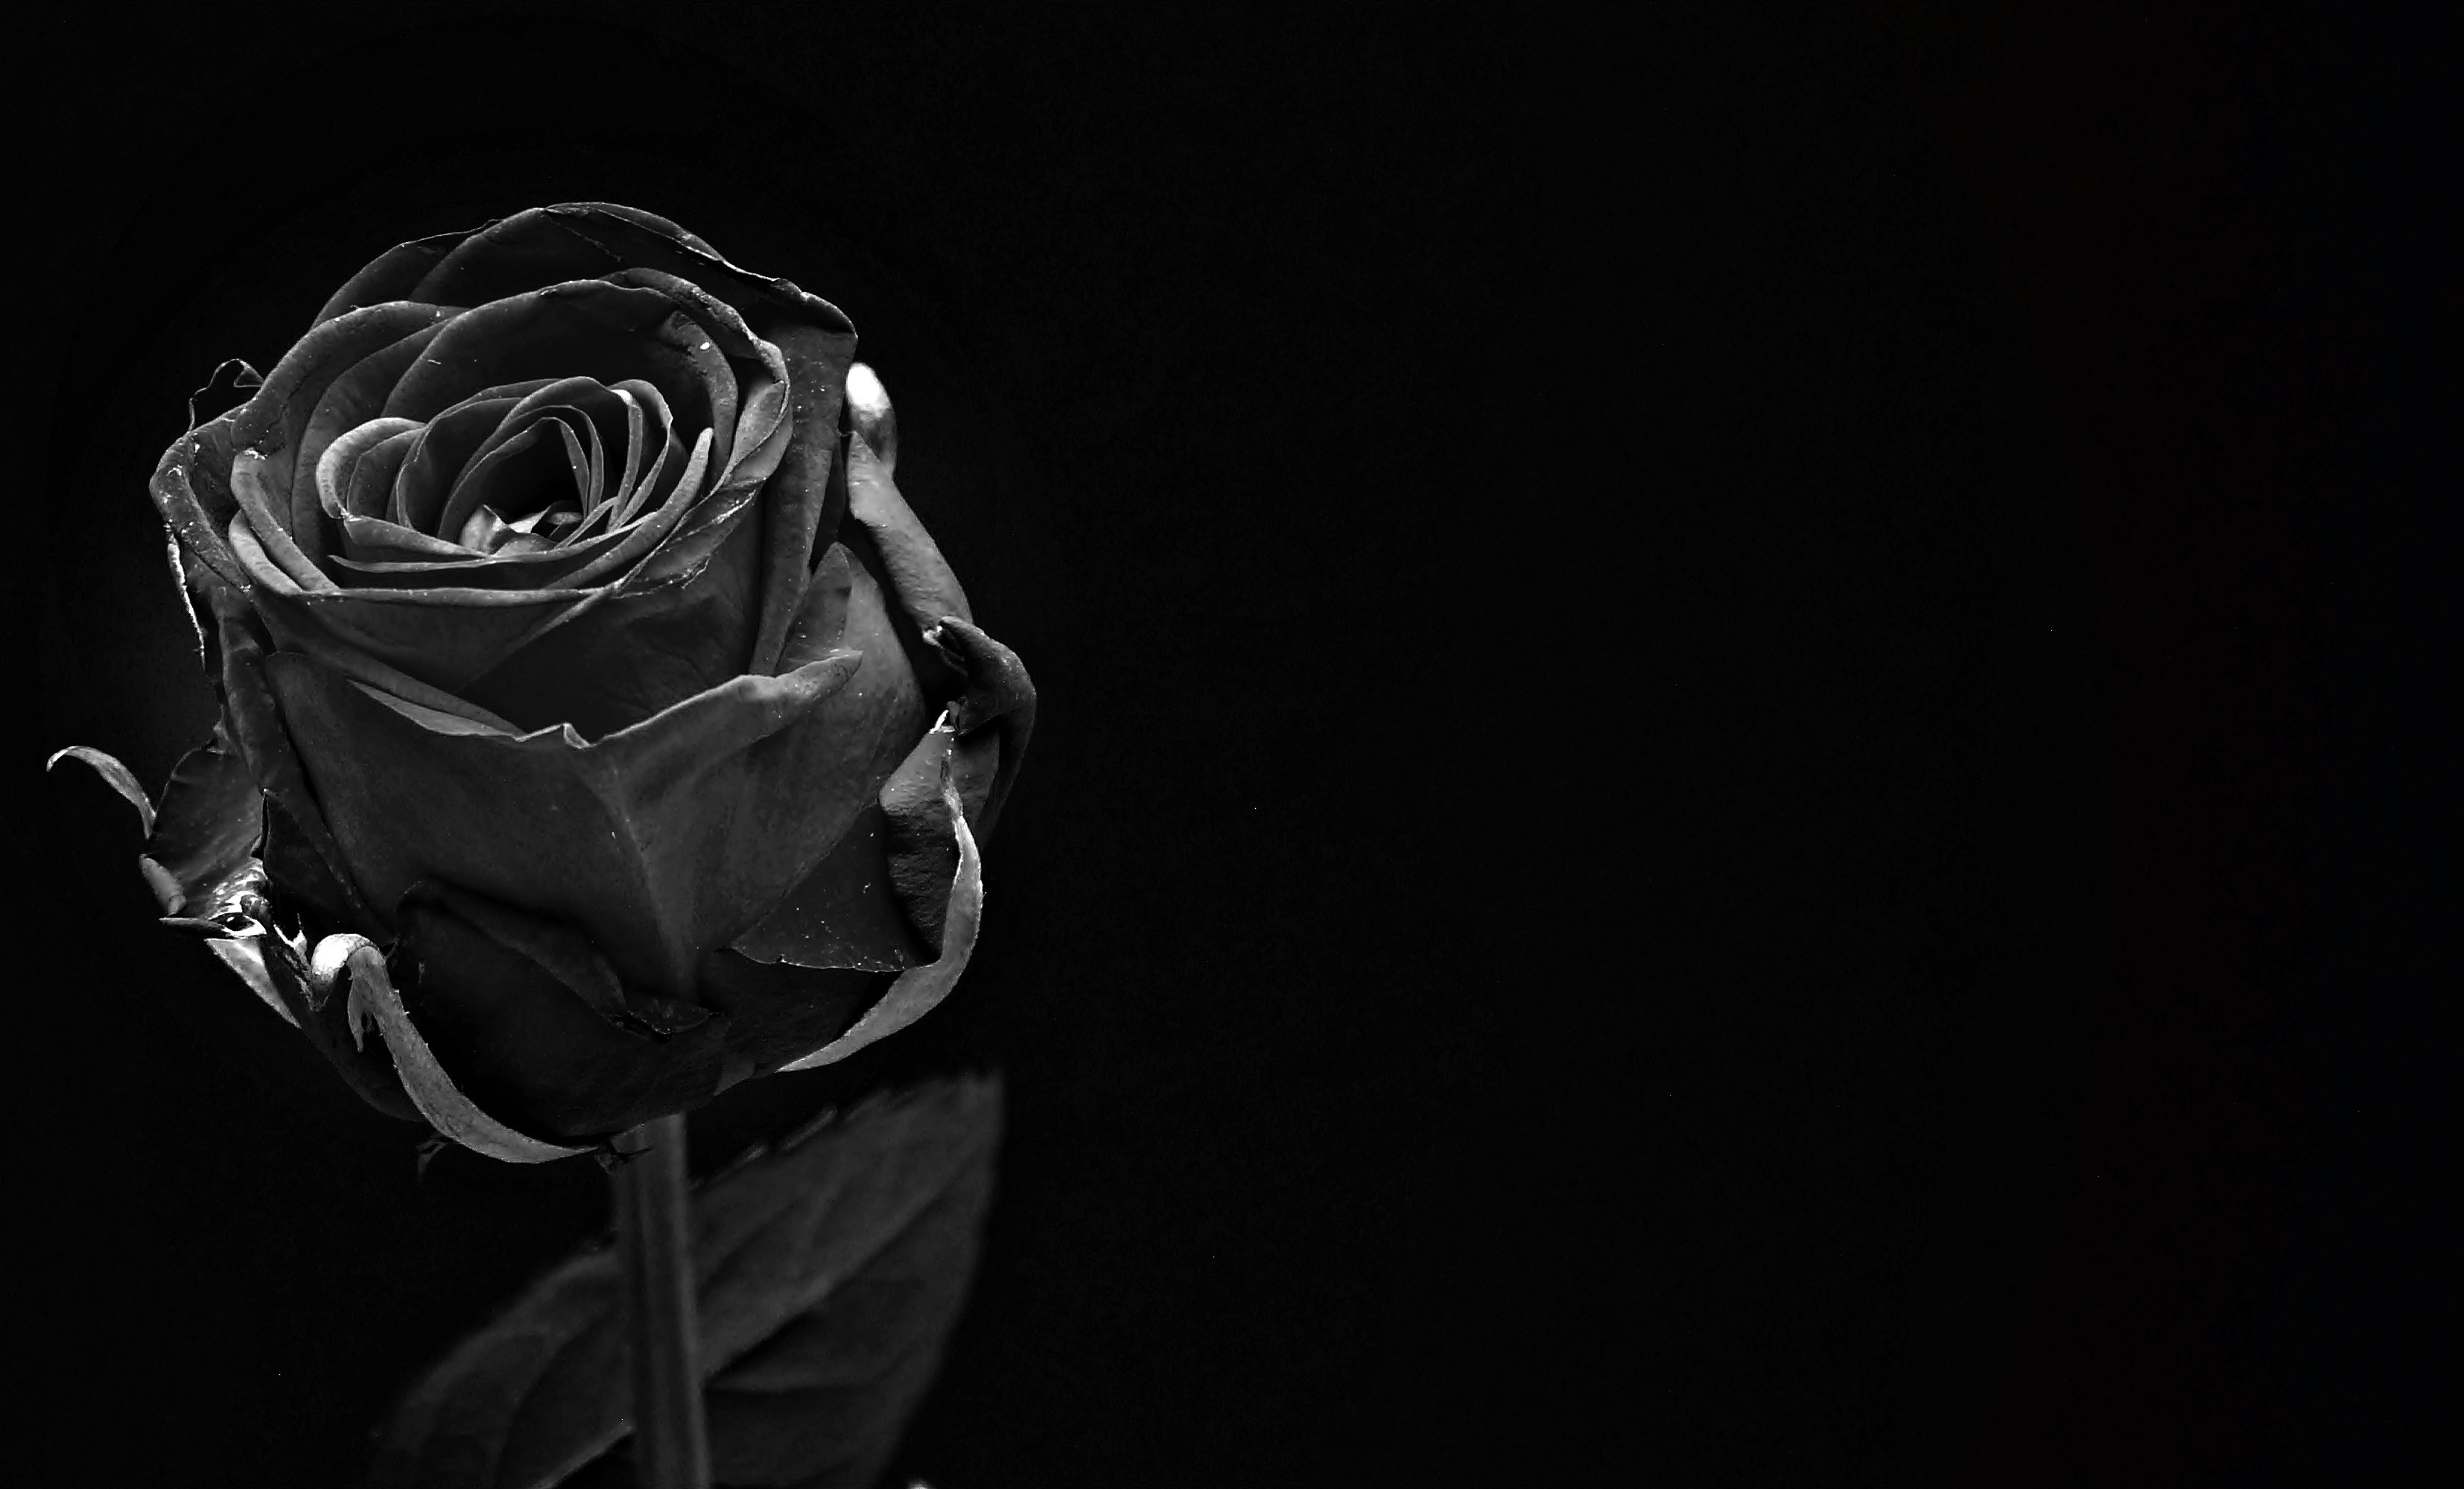 Roses With Black Background (50+ Images